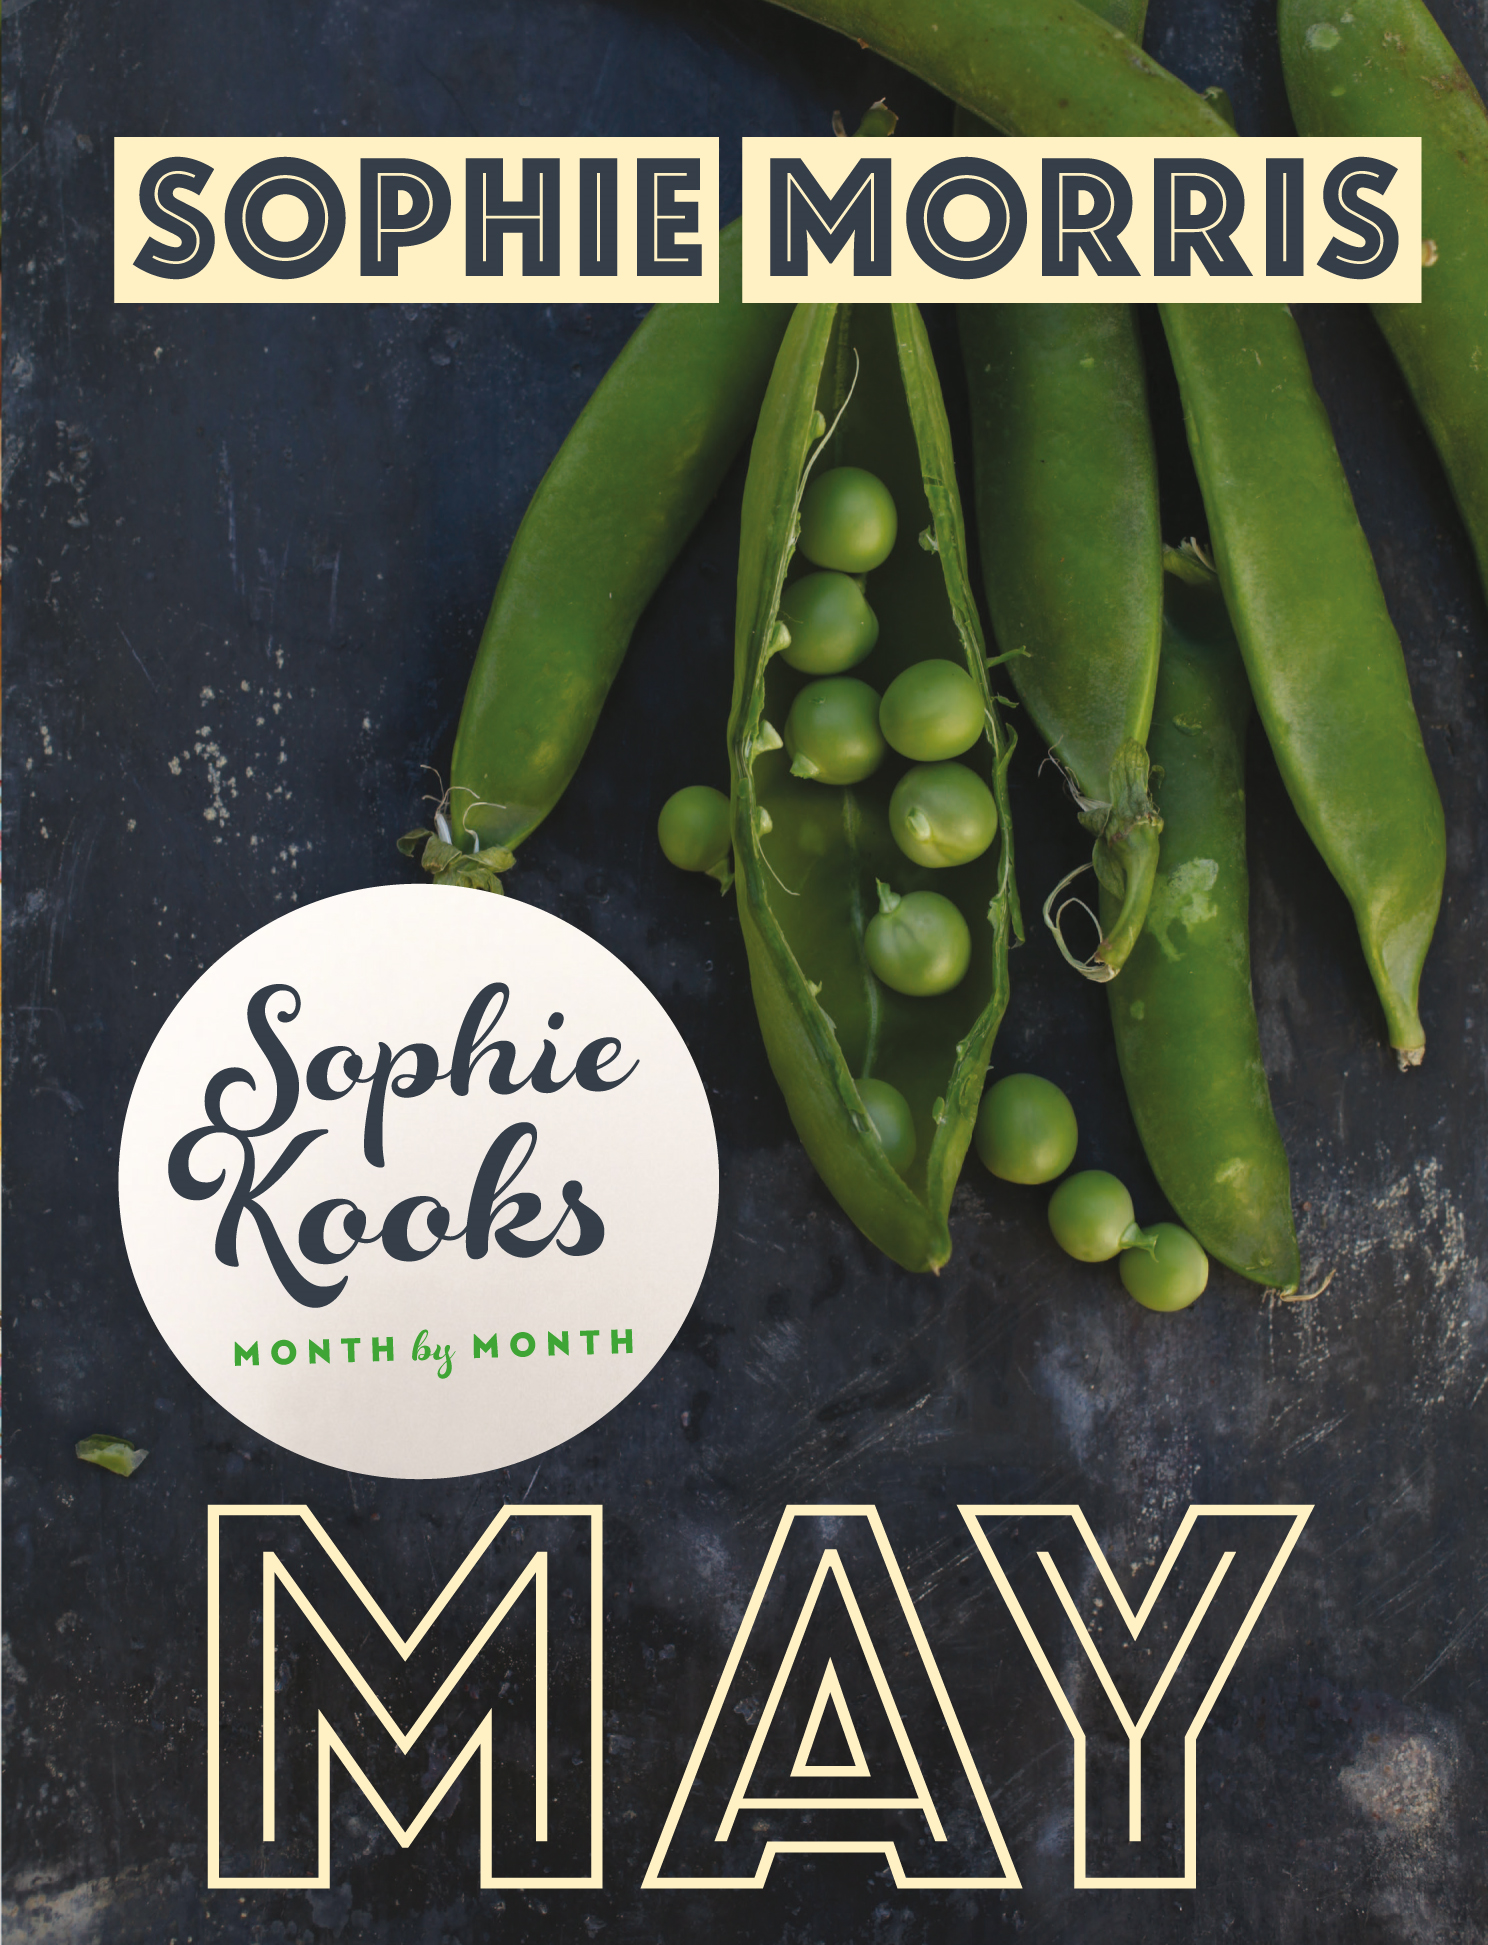 Sophie Kooks Month by Month: Sophie Kooks May: Quick and Easy Feelgood Food by Sophie Morris of Kooky Dough